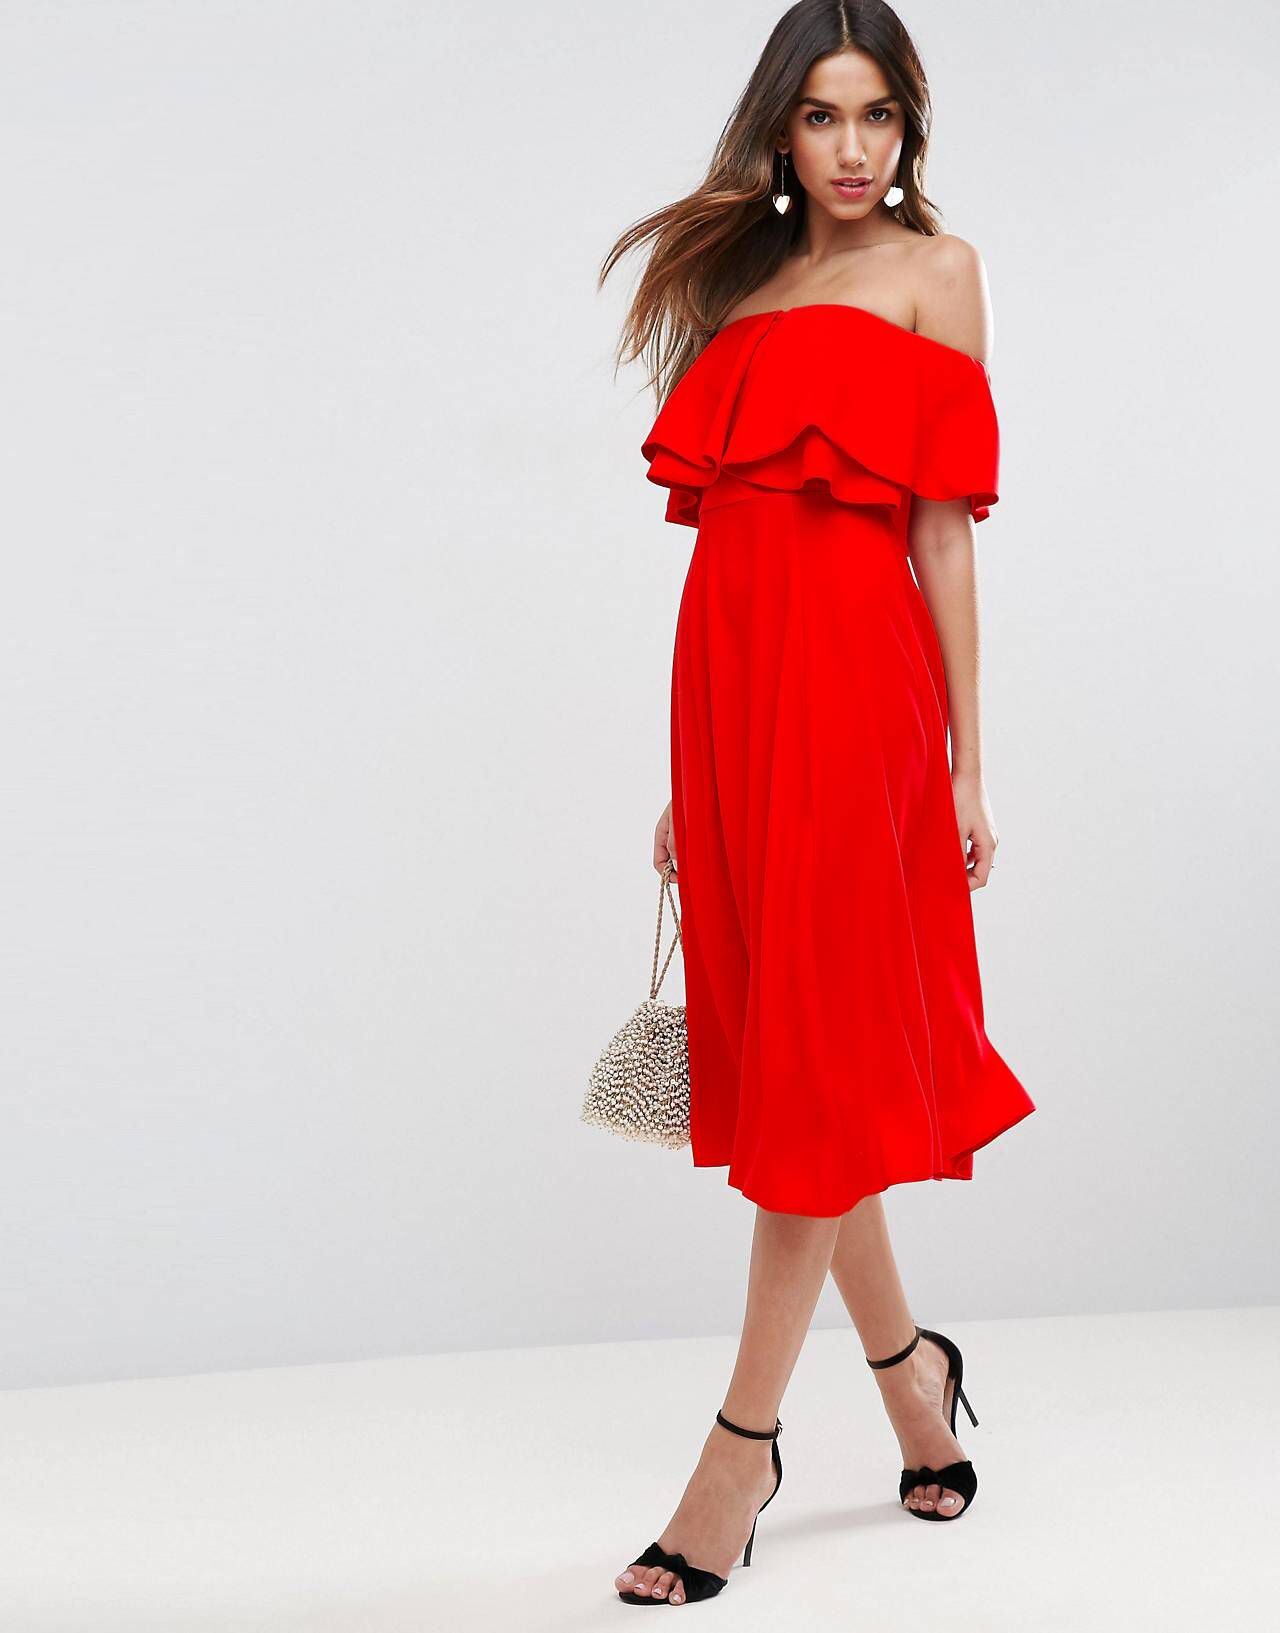 Asos wedding guest dress midi  LOVE this from ASOS  Styles  Pinterest